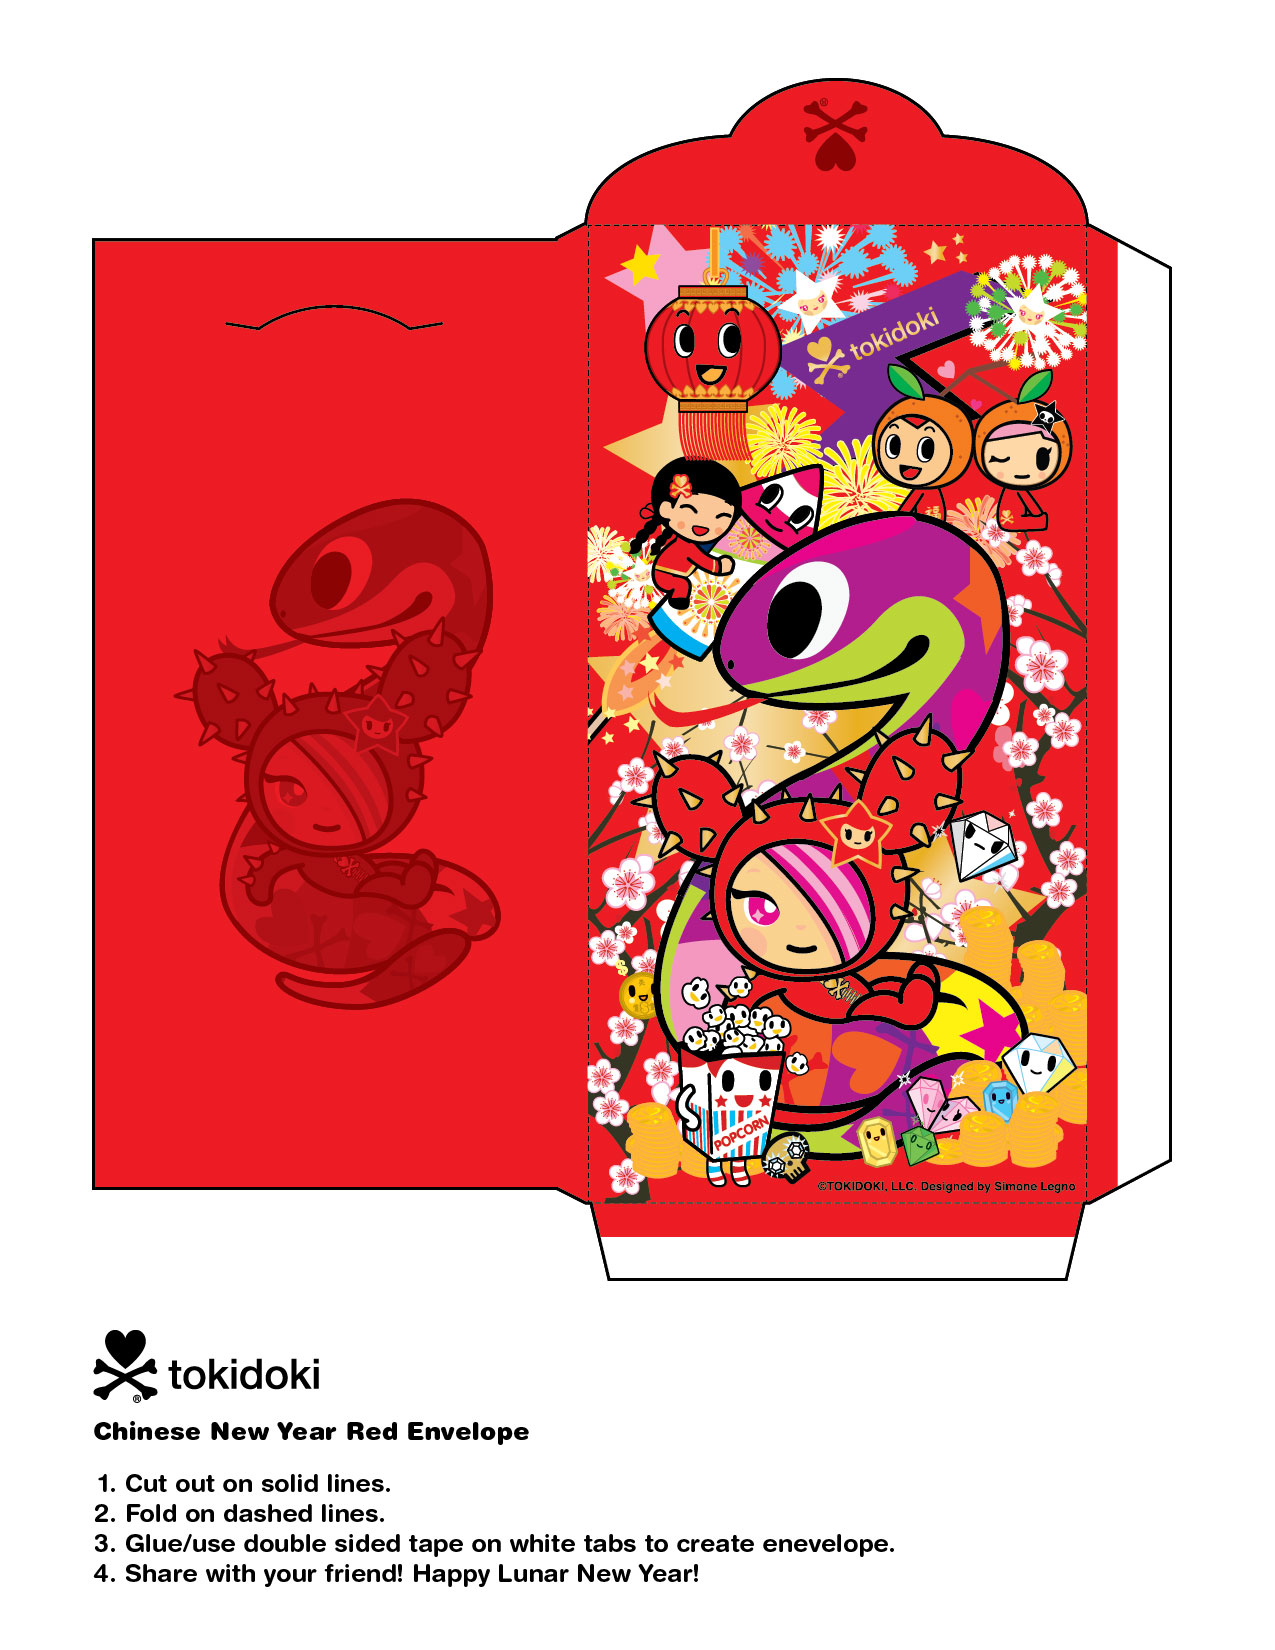 Happy Year of the Snake! 11